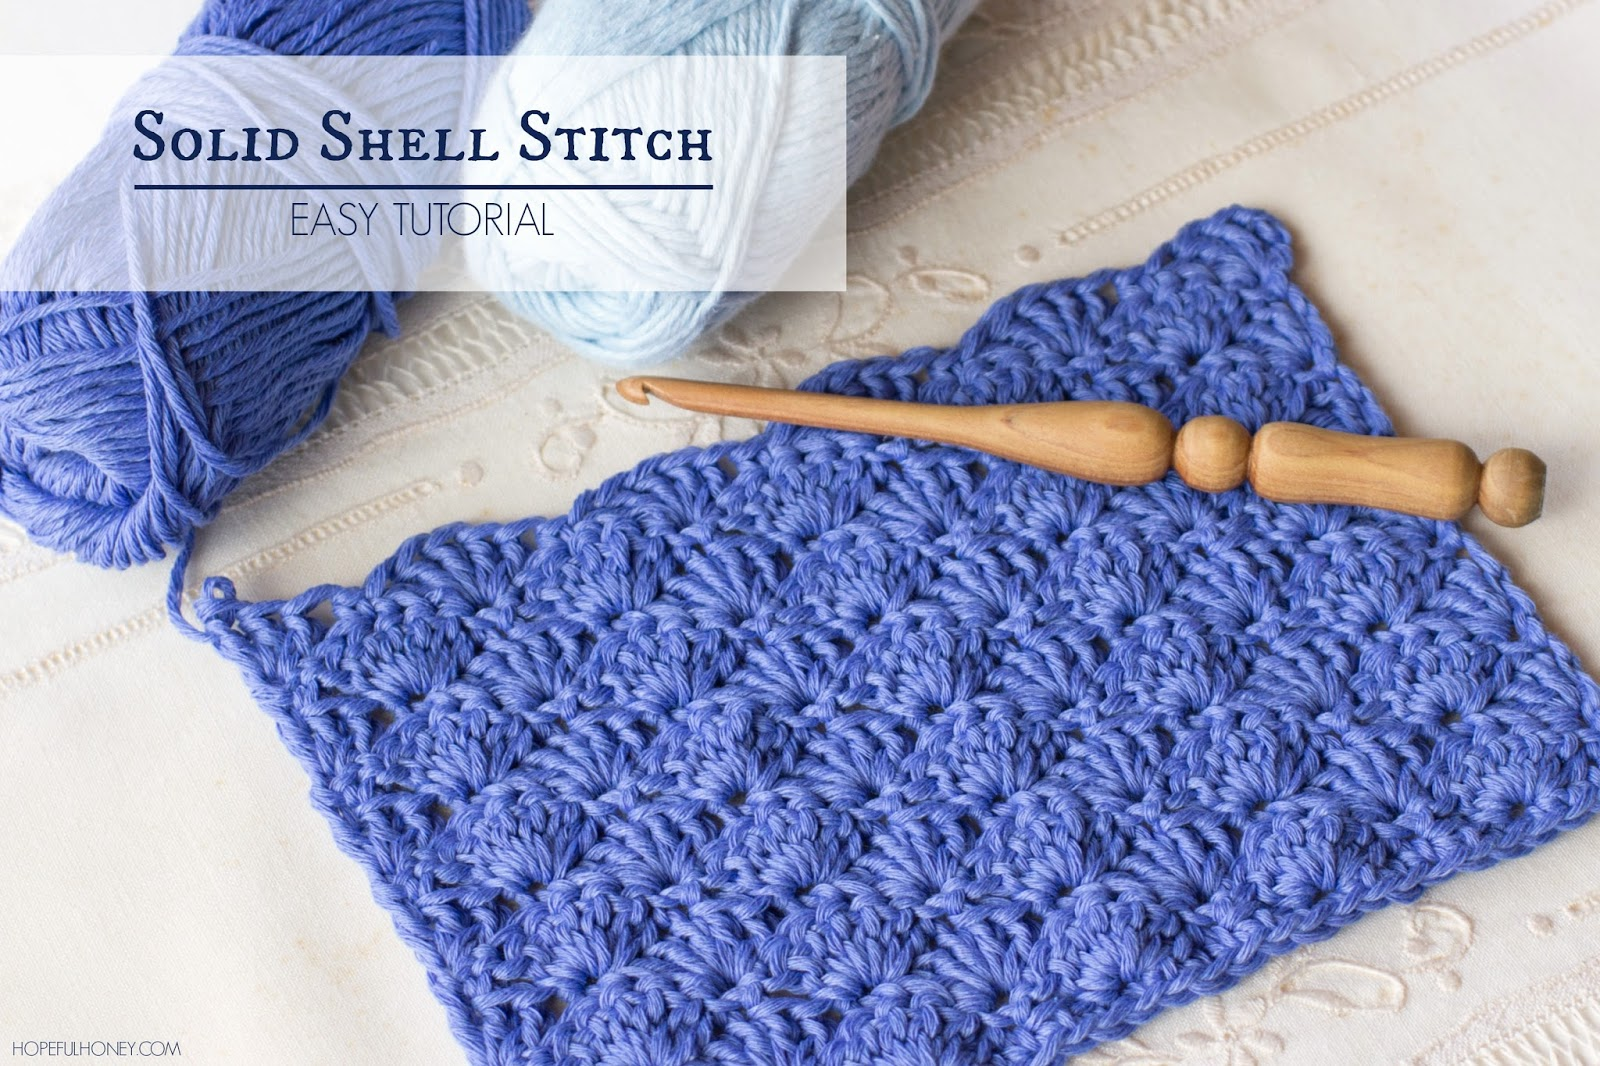 Crochet Stitches Shell Video : ... Crochet, Create: How To: Crochet The Solid Shell Stitch - Easy